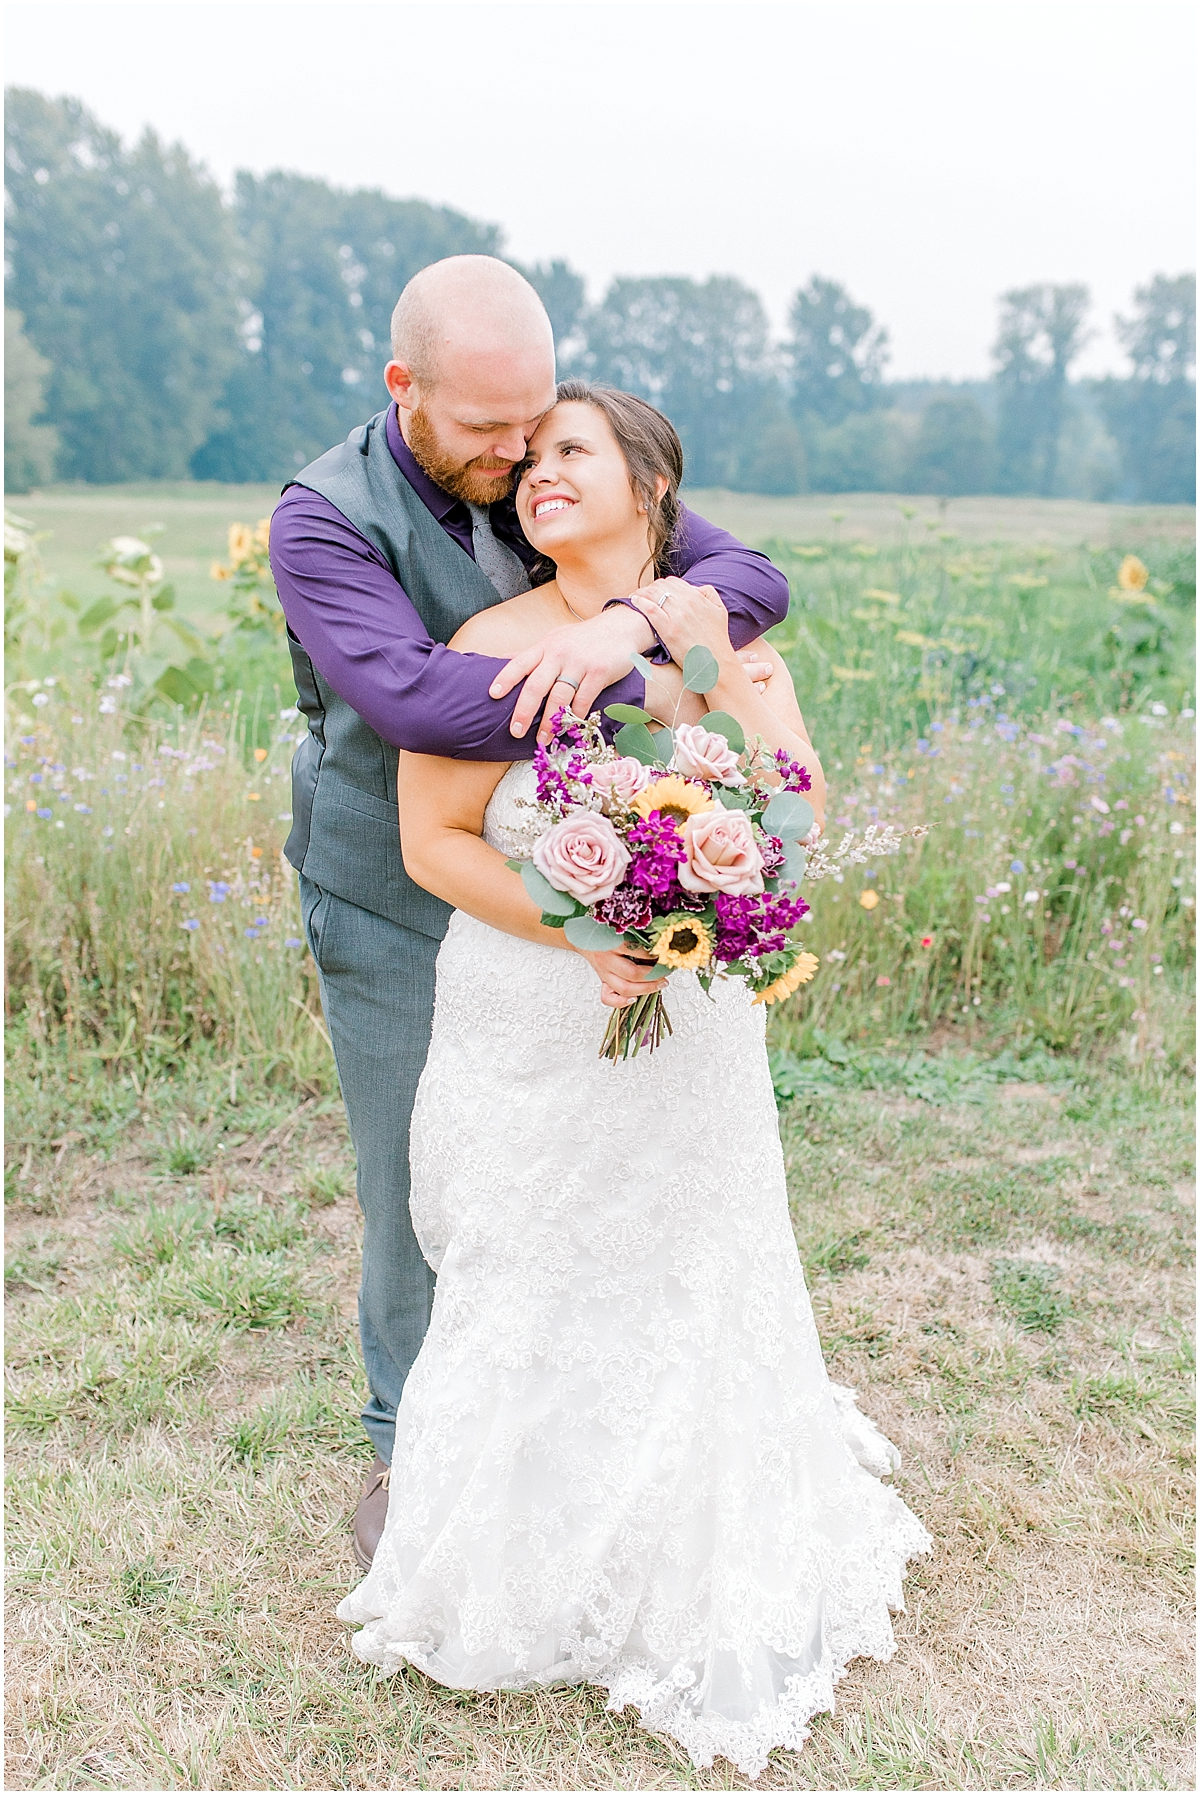 Sunflower themed wedding with purple accents, Emma Rose Company Seattle Wedding Photographer, Light and Airy photographer Kindred Presets Wedding Details PNW_0179.jpg